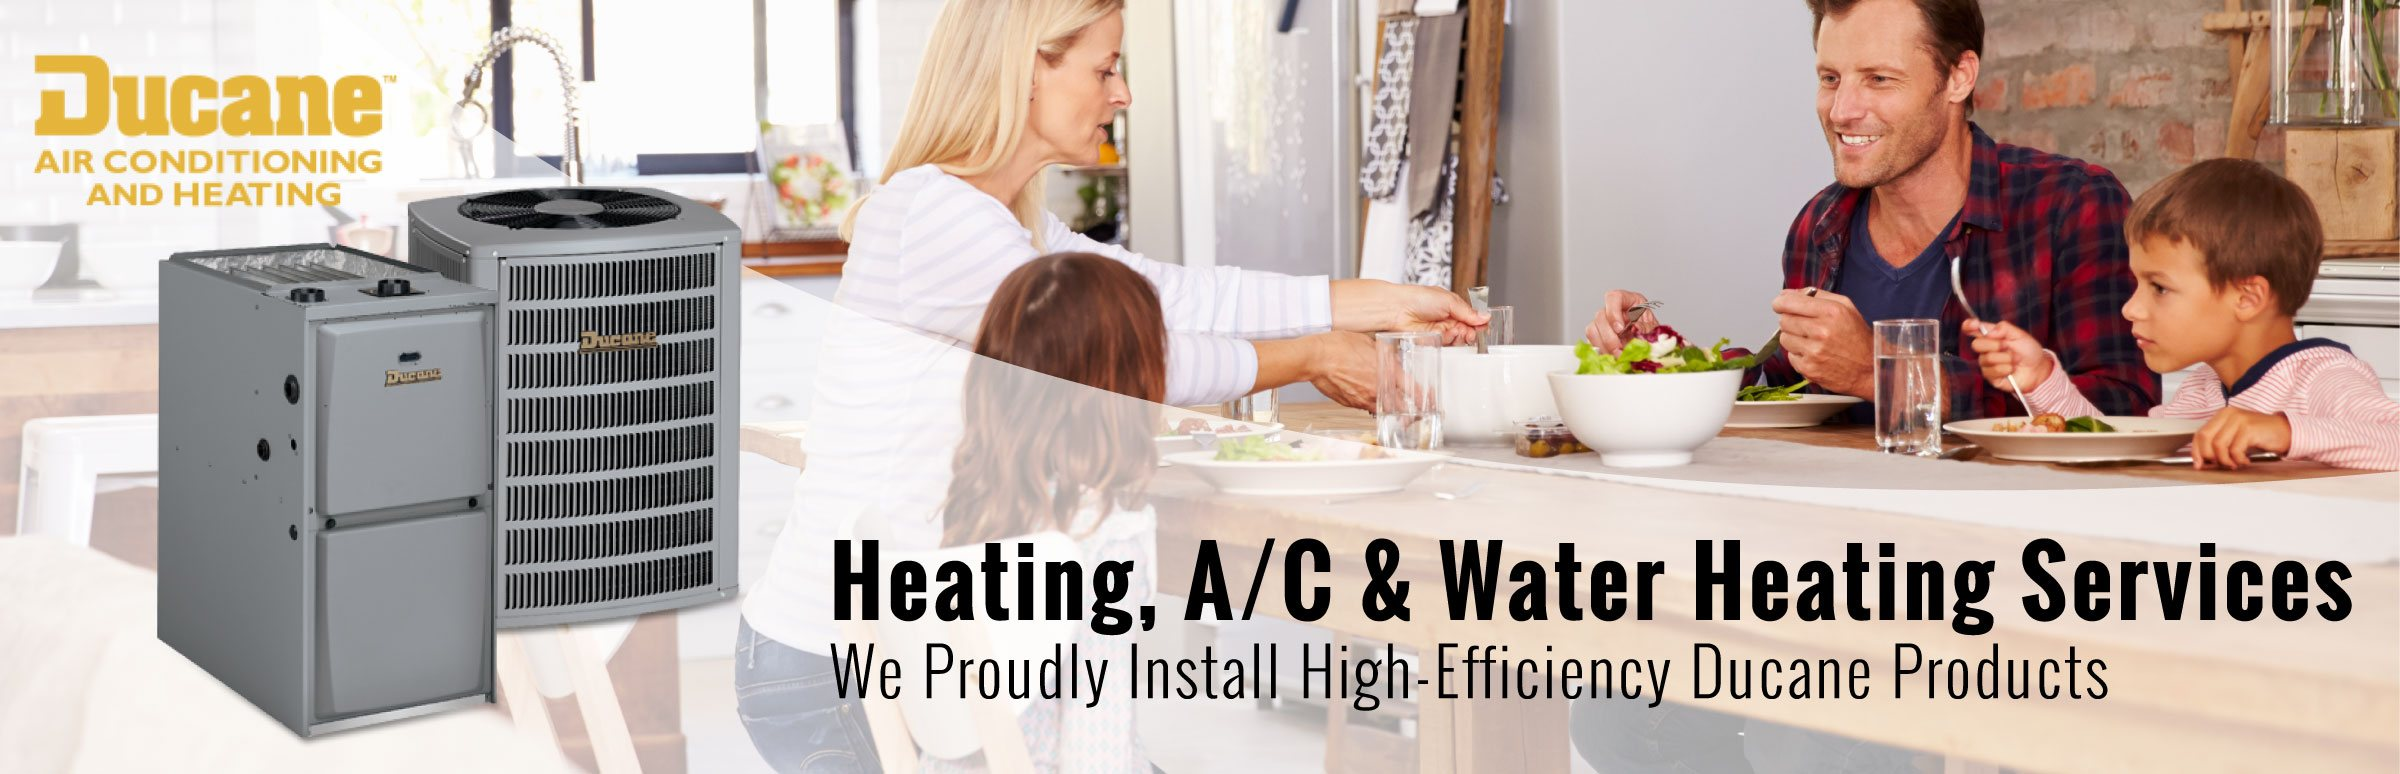 Air Magician is your Heating, A/C, & Water Heating Services - We porudly install High-Efficiency Ducane Heating & Cooling Systems.